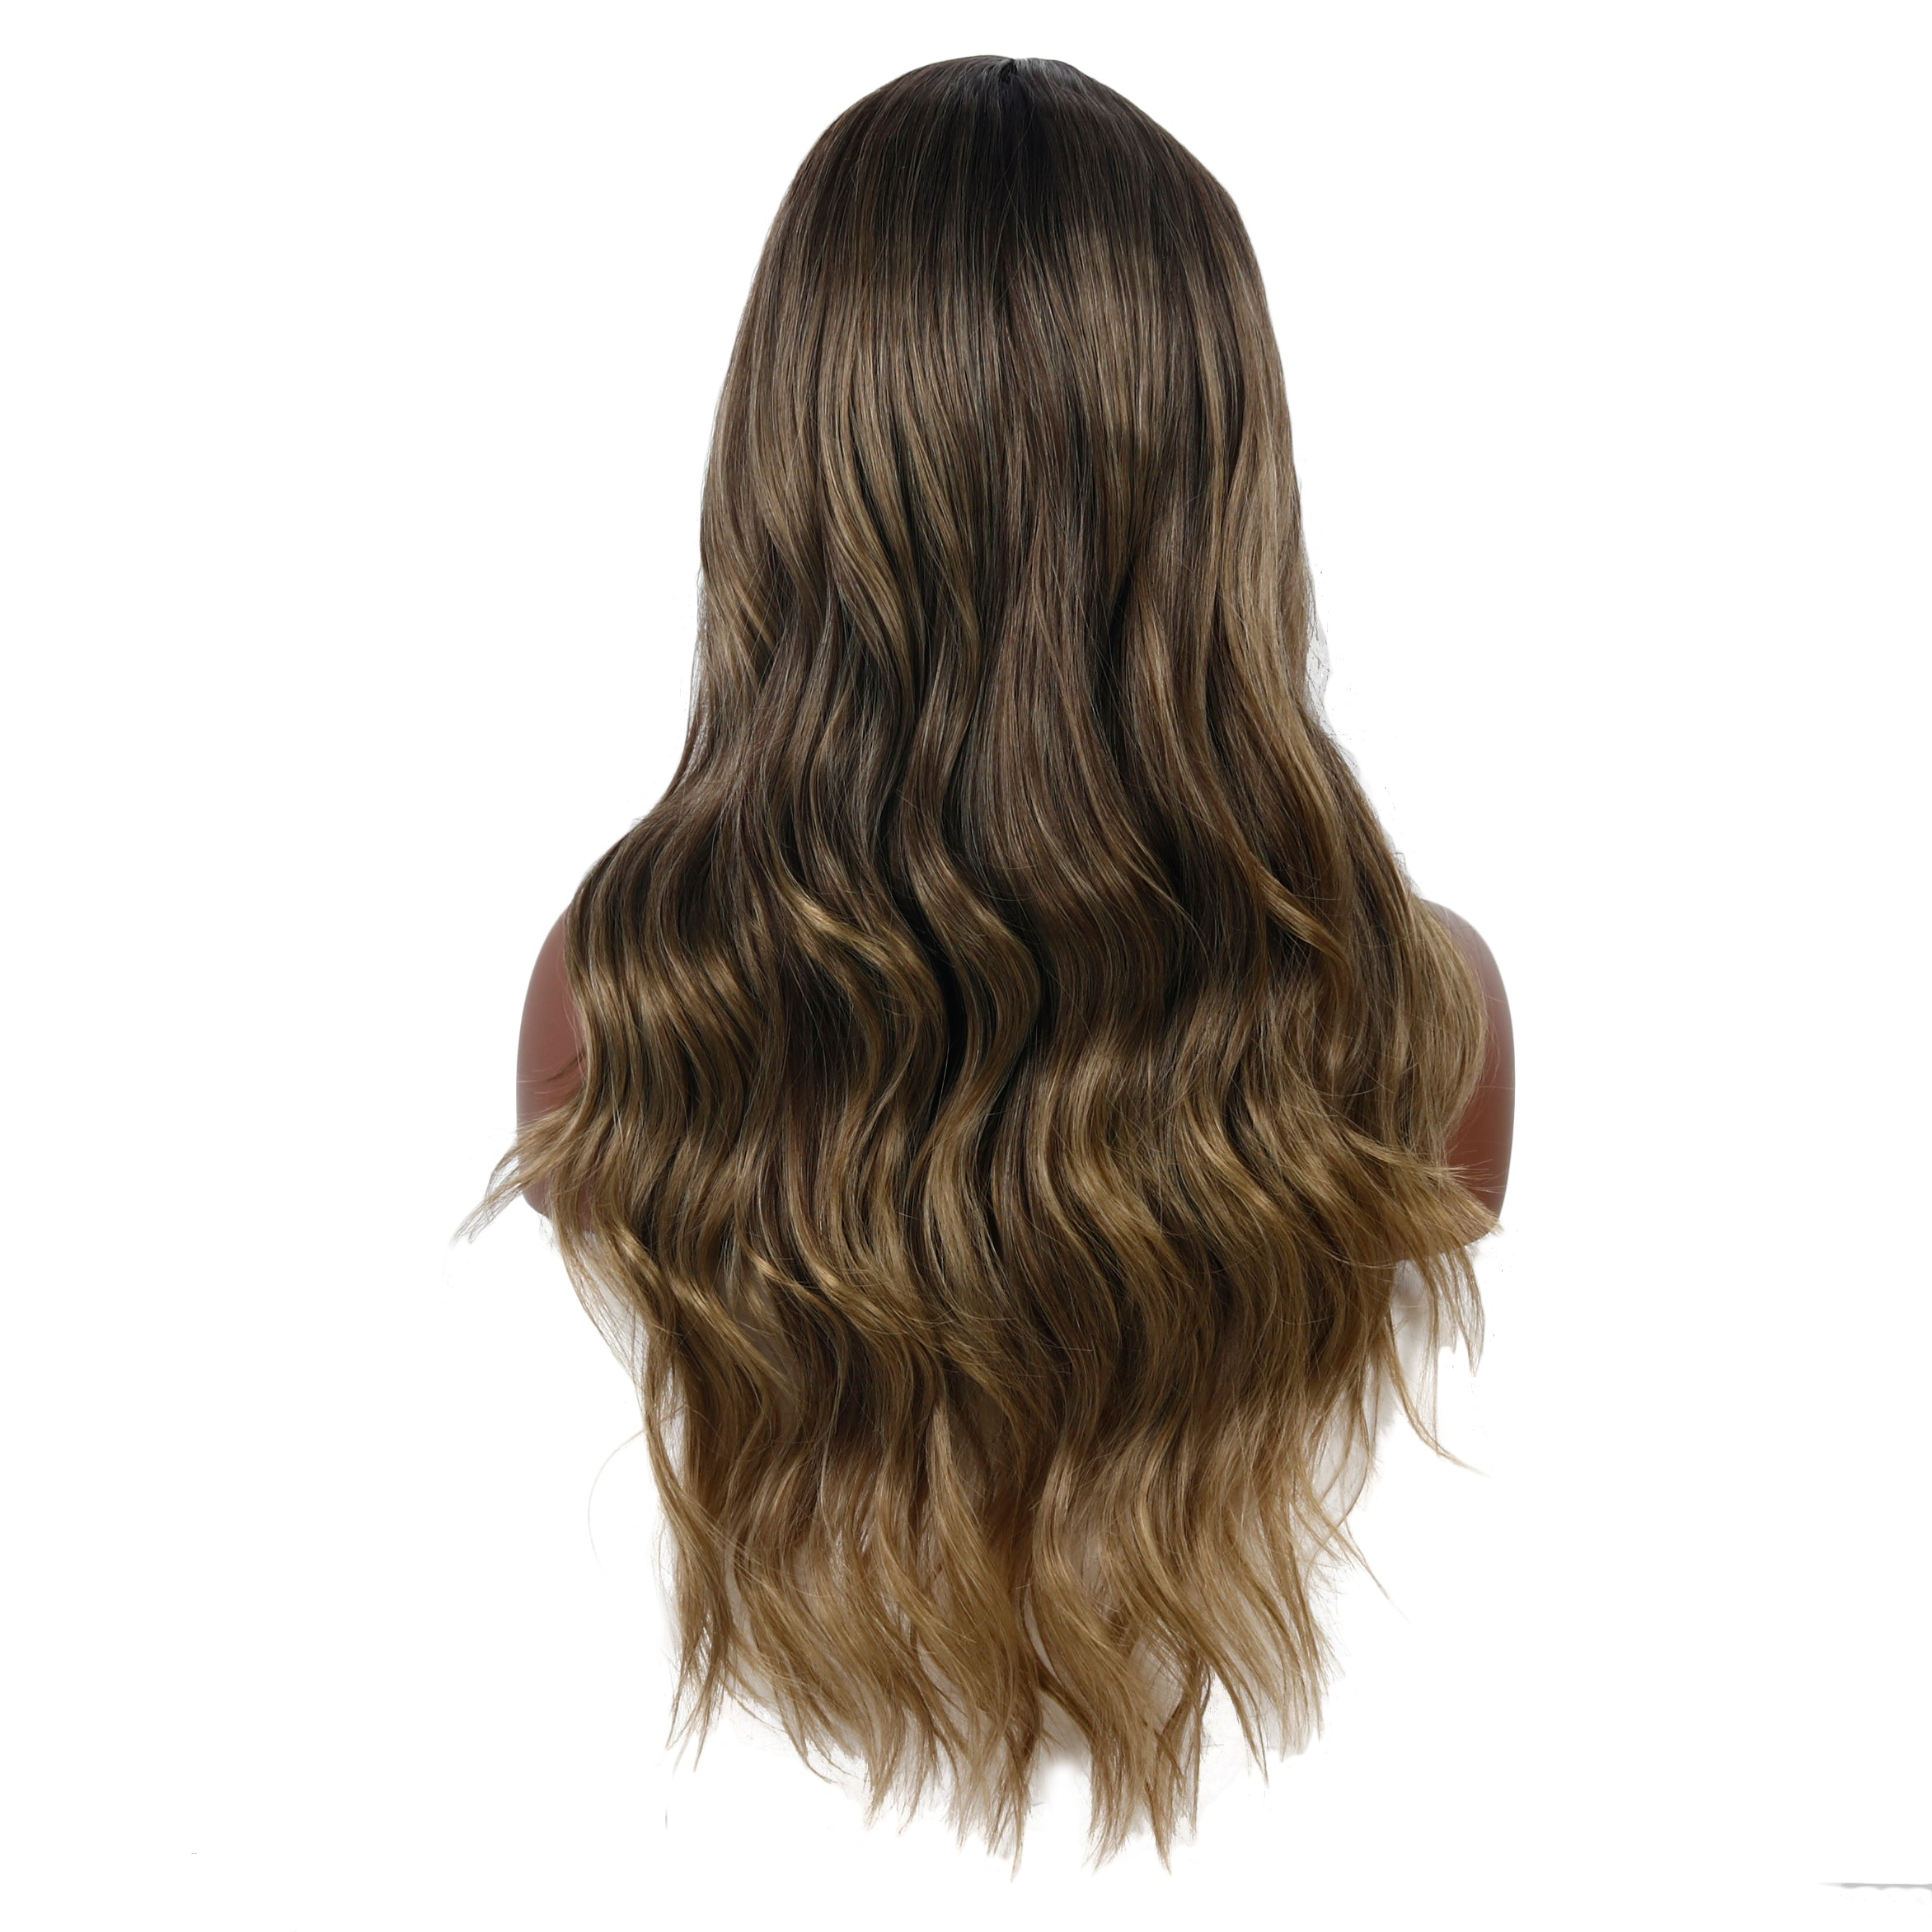 Long Wavy Middle Part Wig for Women - 26 Inch Synthetic Brown Cosplay Body Wave Wig